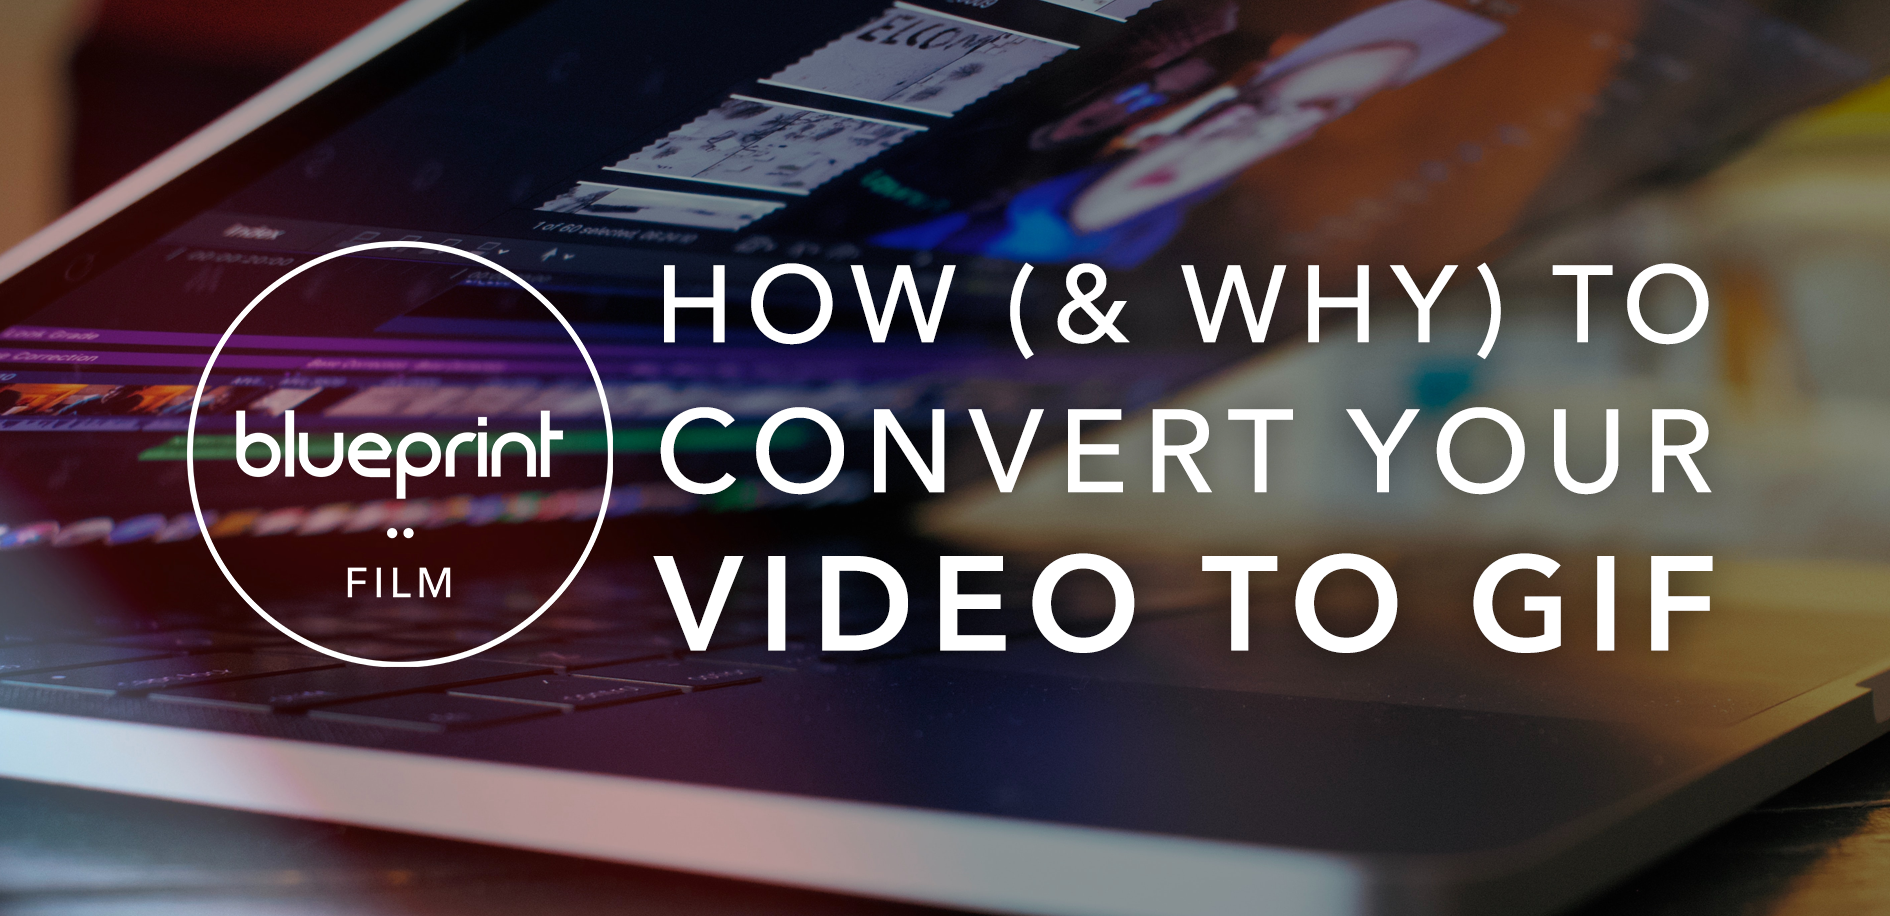 how and why to convert your video to gif